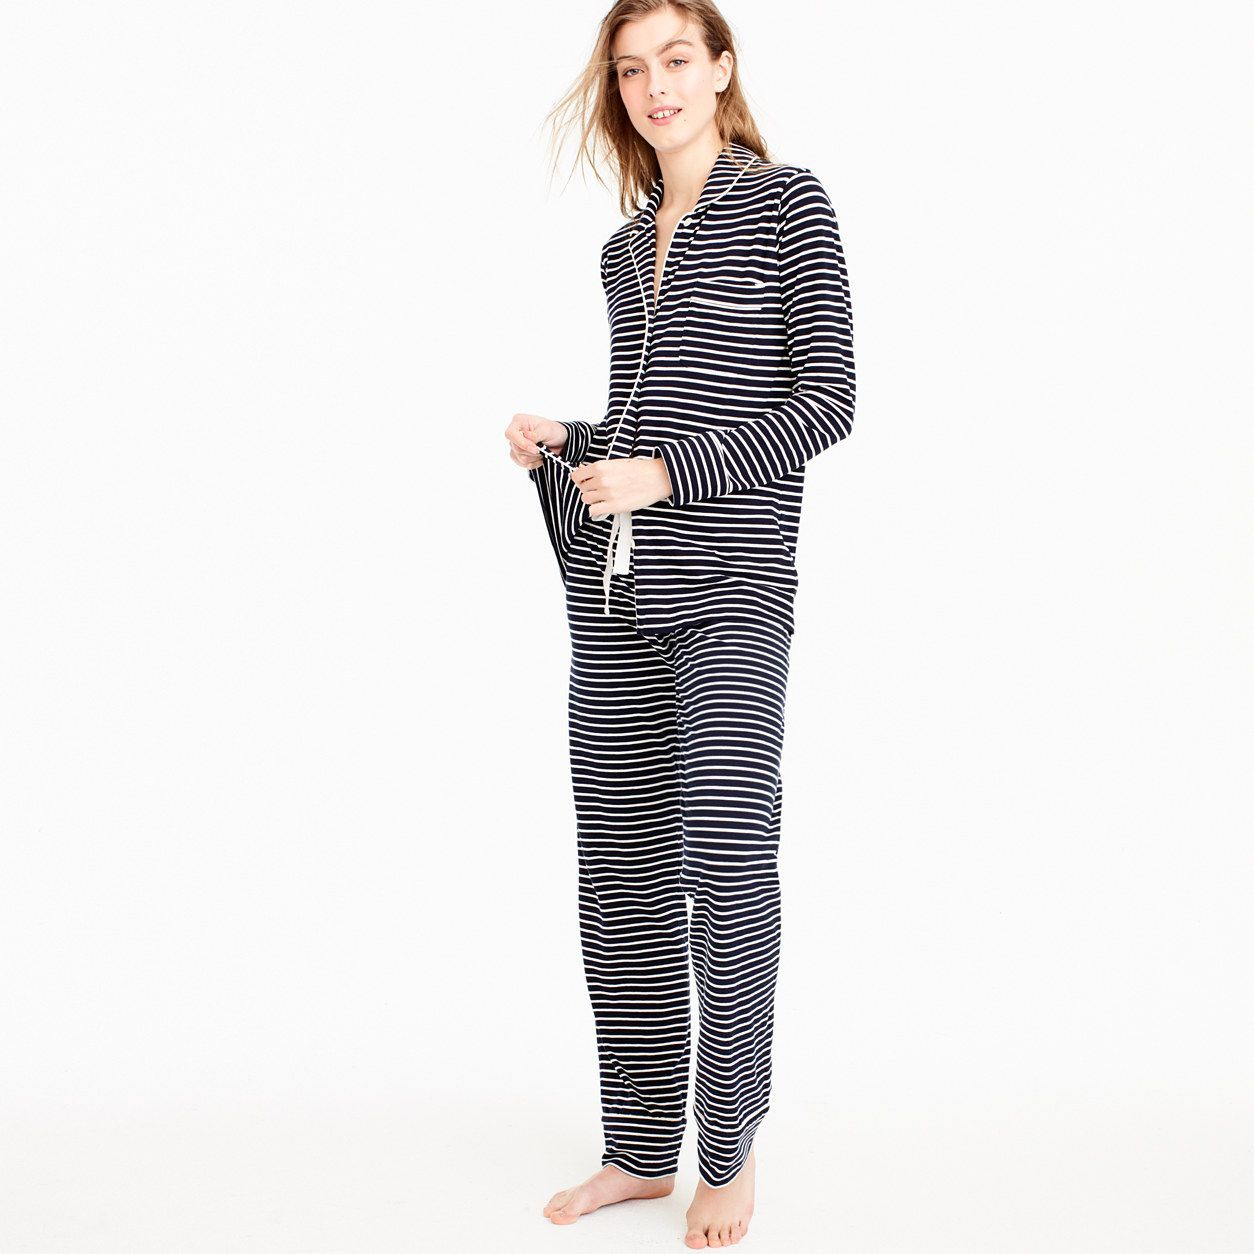 7286754c25 J.Crew Womens Petite Dreamy Cotton Pajama Set In Stripe (Size L Petite)